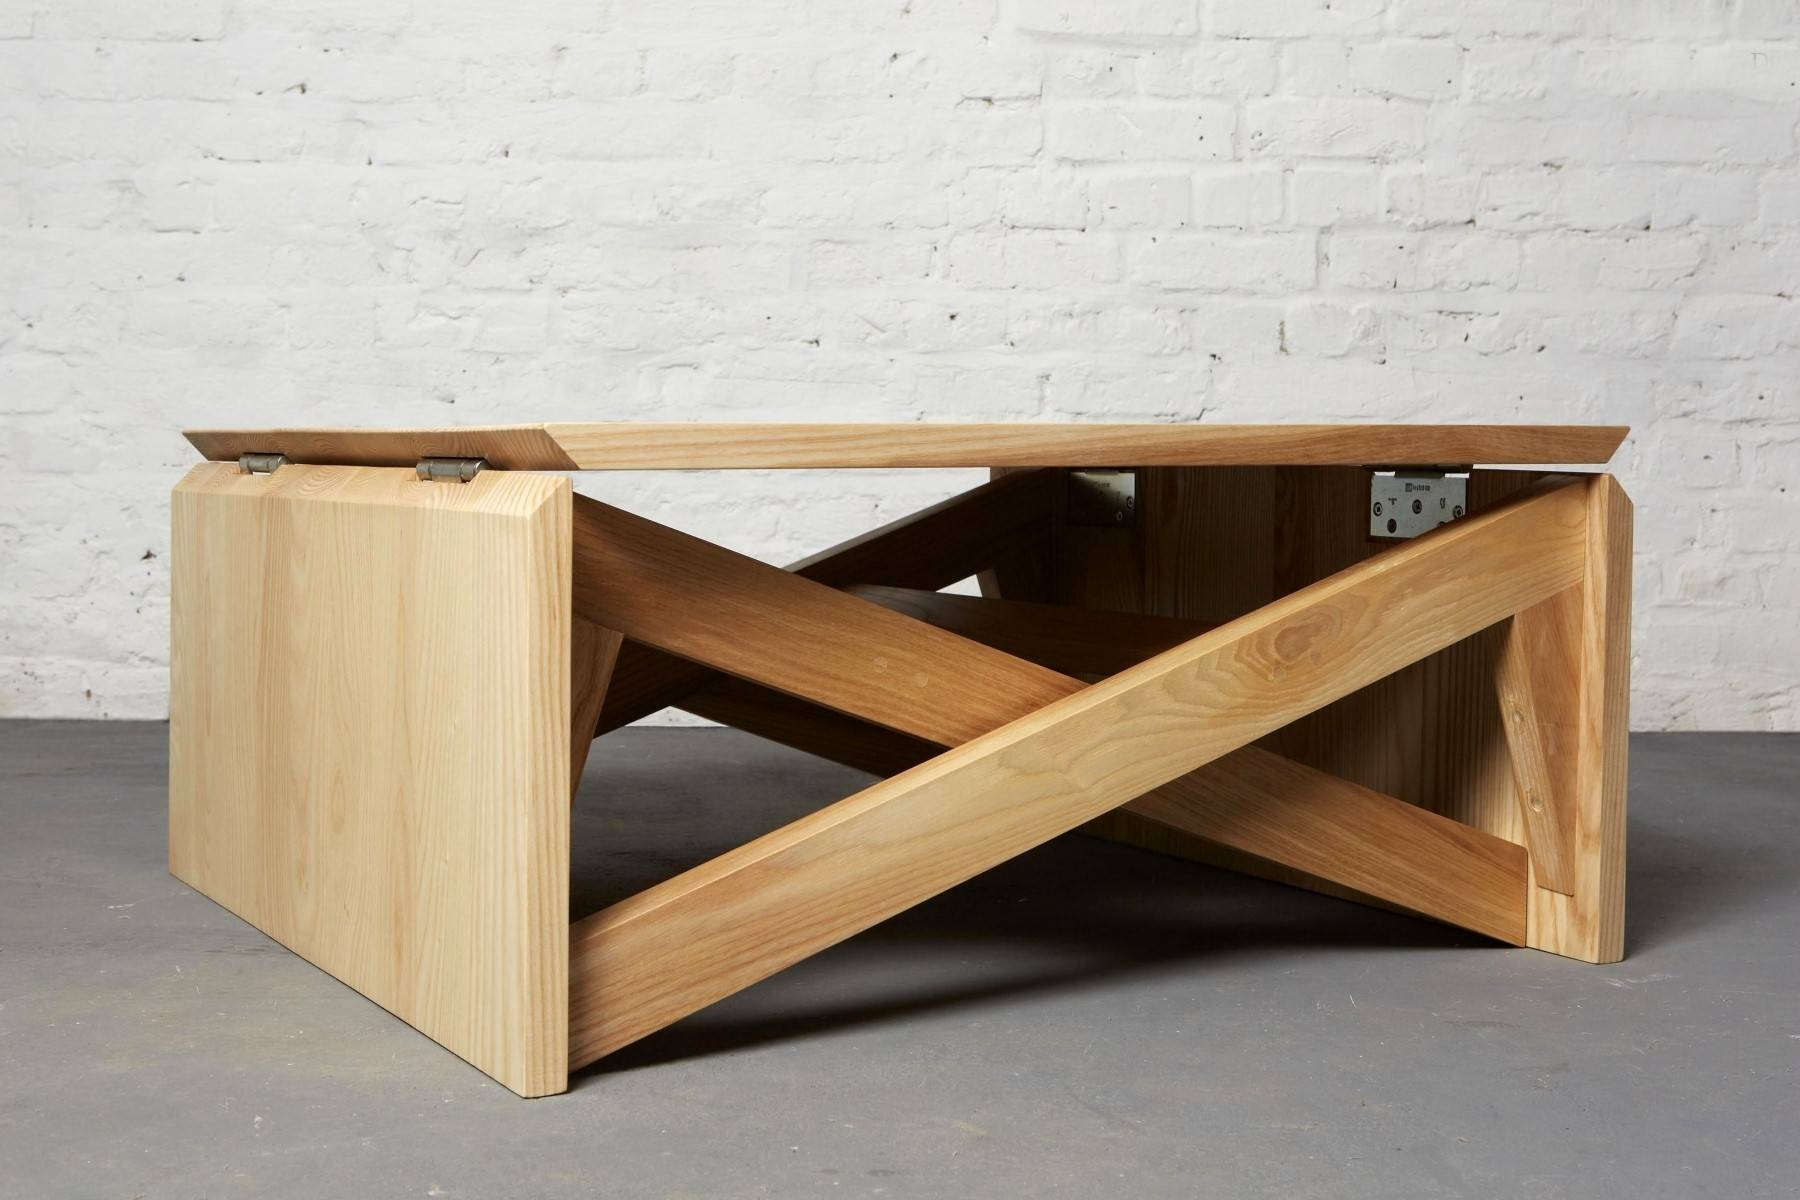 Furniture. Inspiring Coffee Table Converts To Dining Table Ideas within Oak and Cream Coffee Tables (Image 21 of 30)